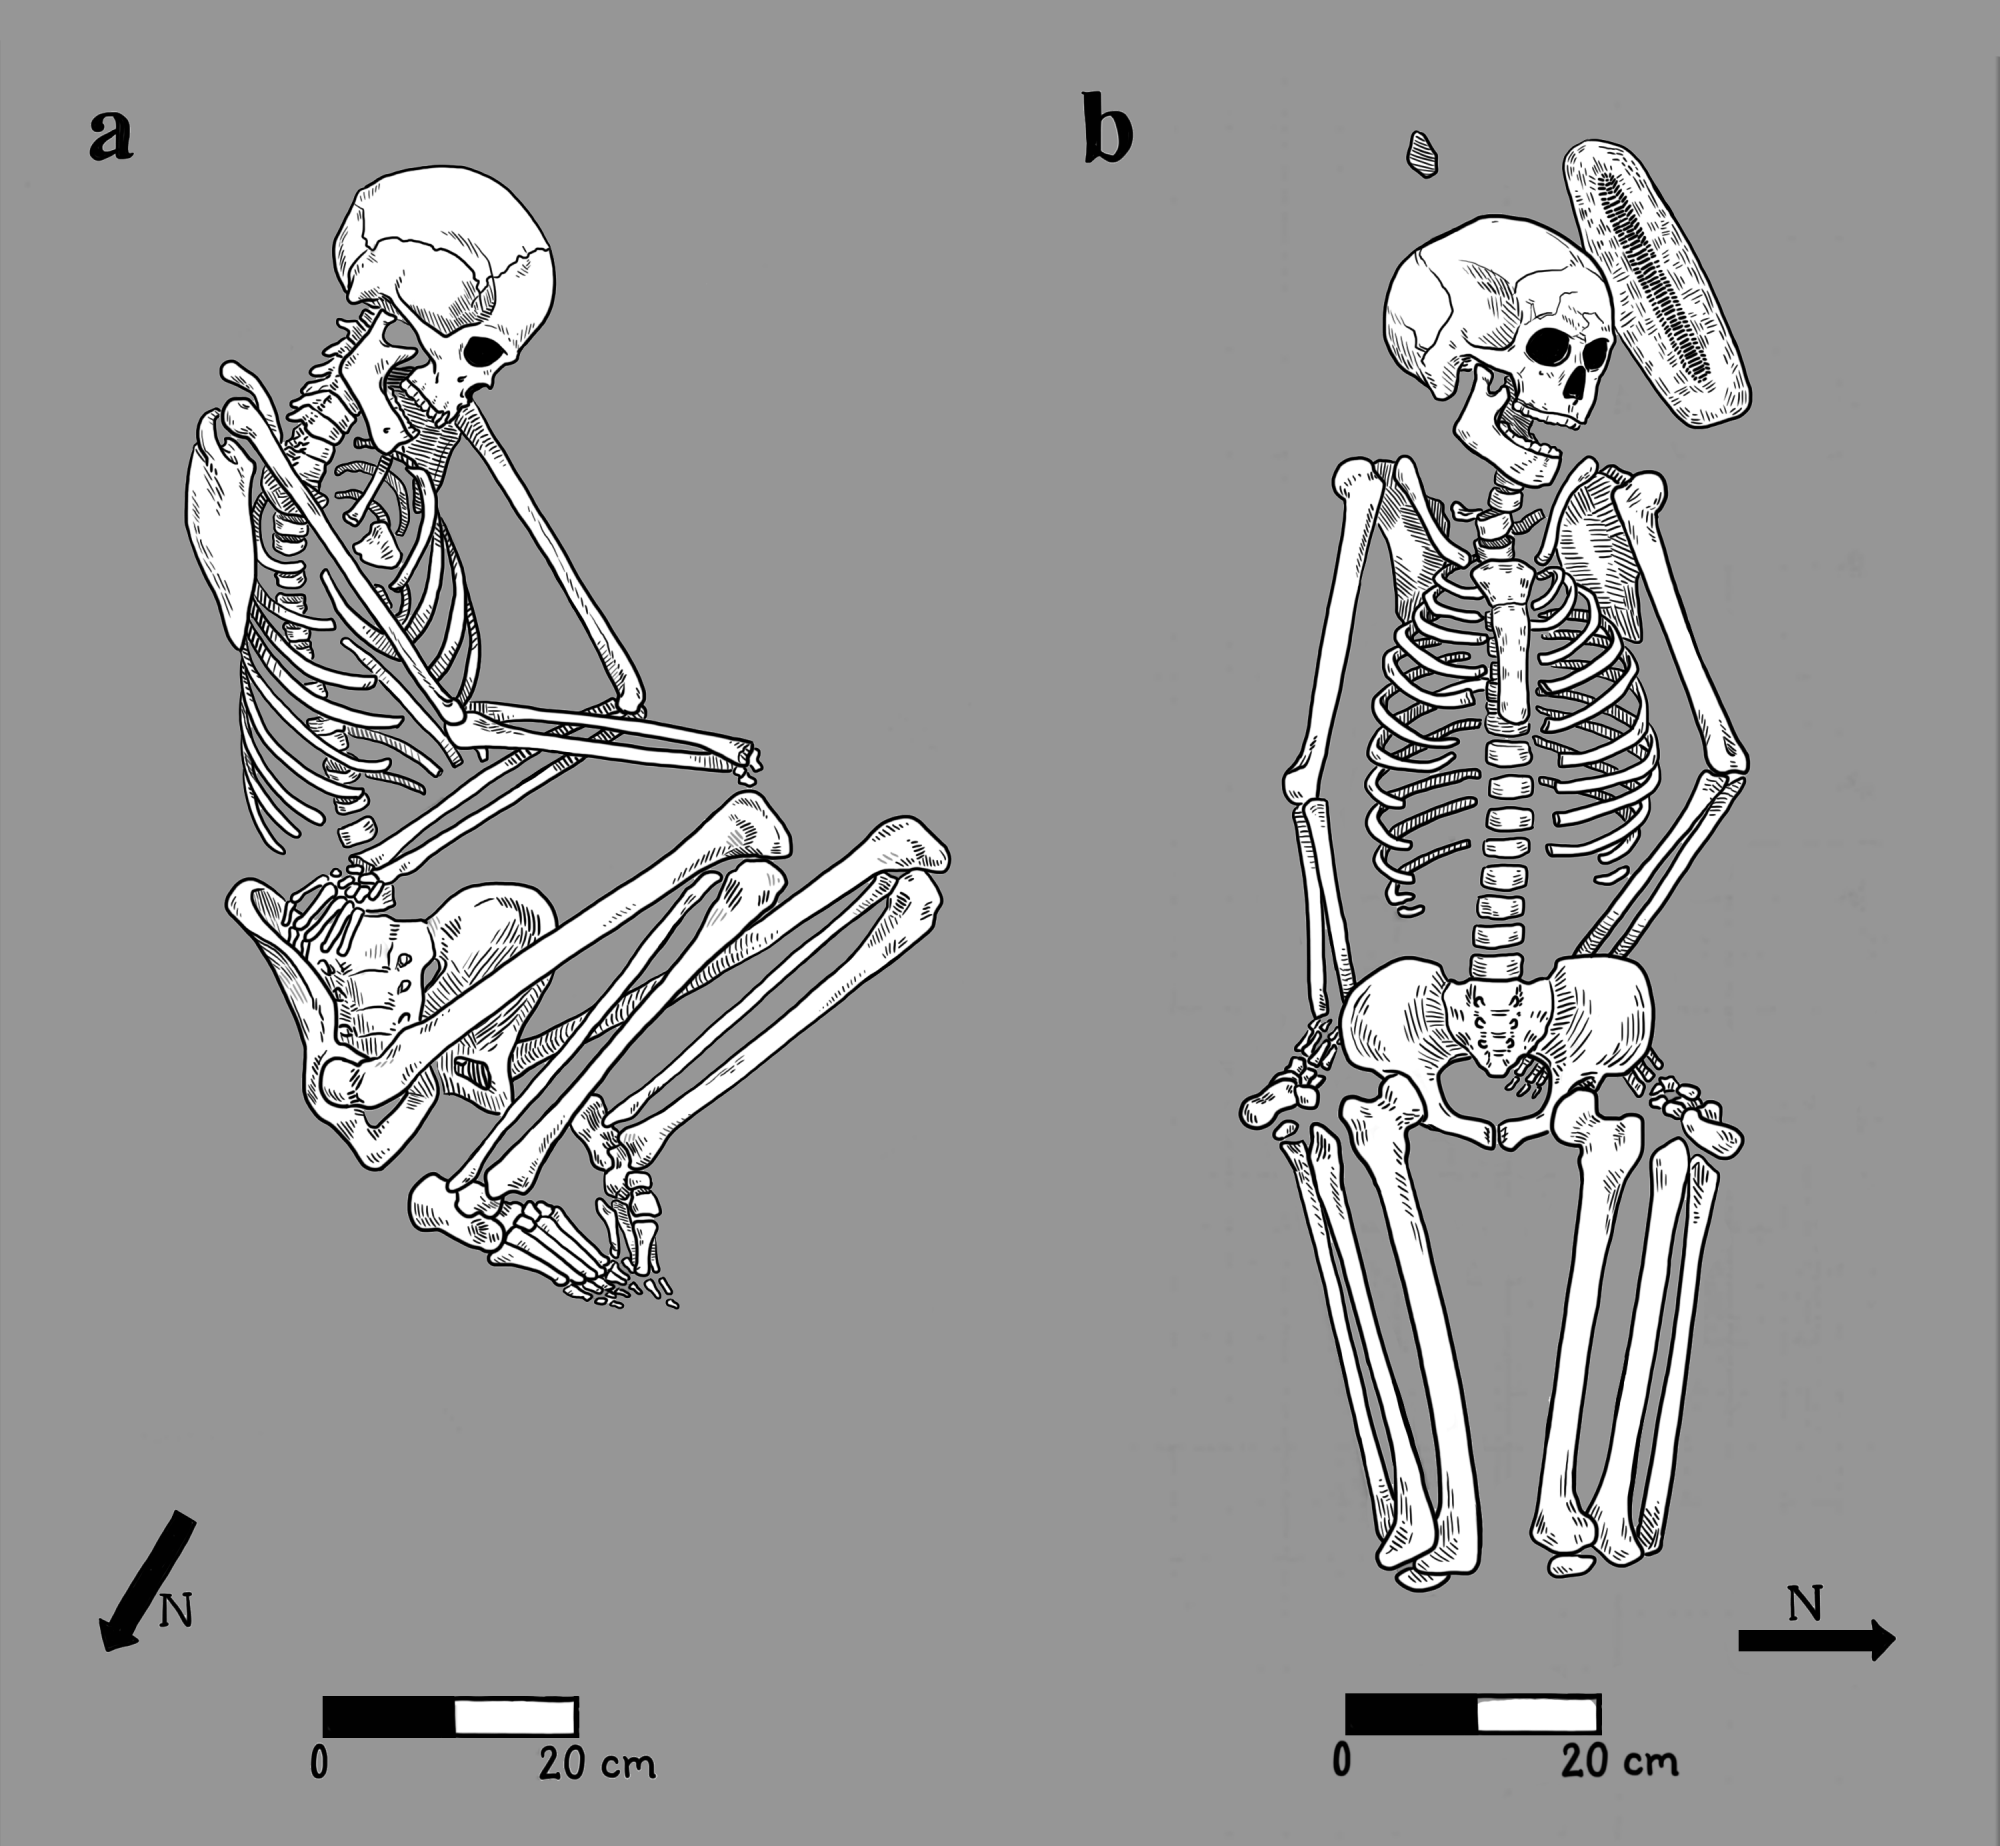 Bodies buried by family members were arranged in a flexed position on their side , while in atypical burials, bodies were left in more awkward positions .